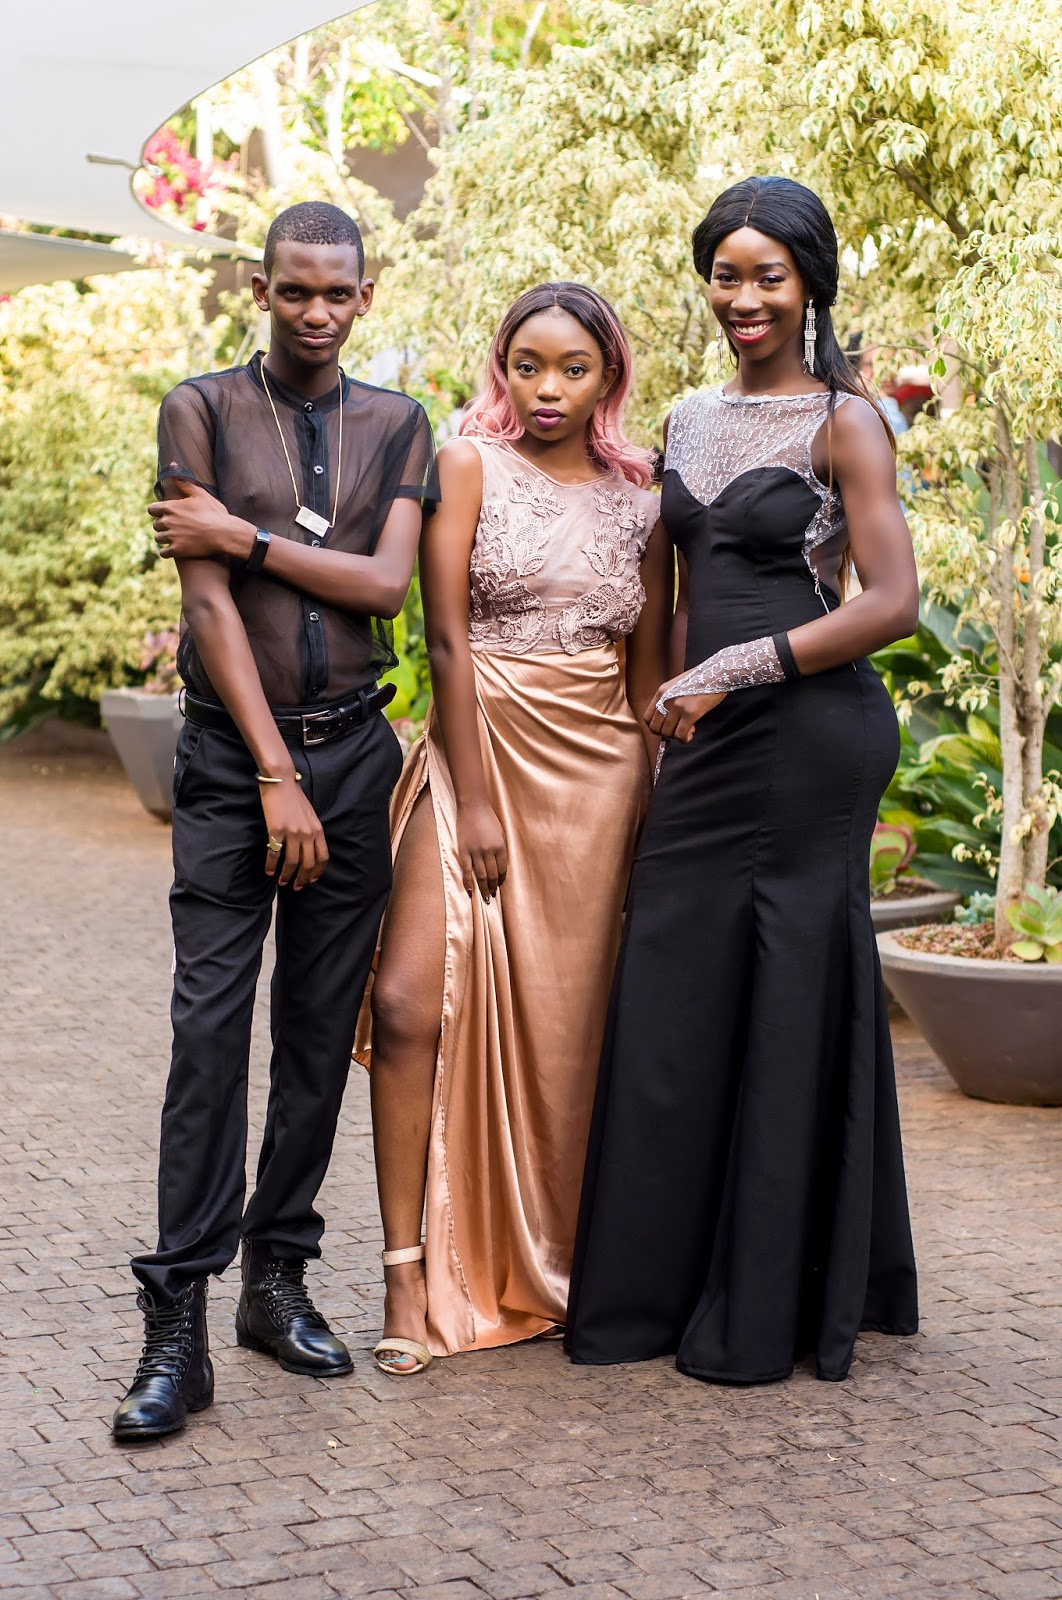 fashion high tea, what to wear to fashion high tea, gown with gloves, black and silver gown, style with ezil, ezil, events in kenya